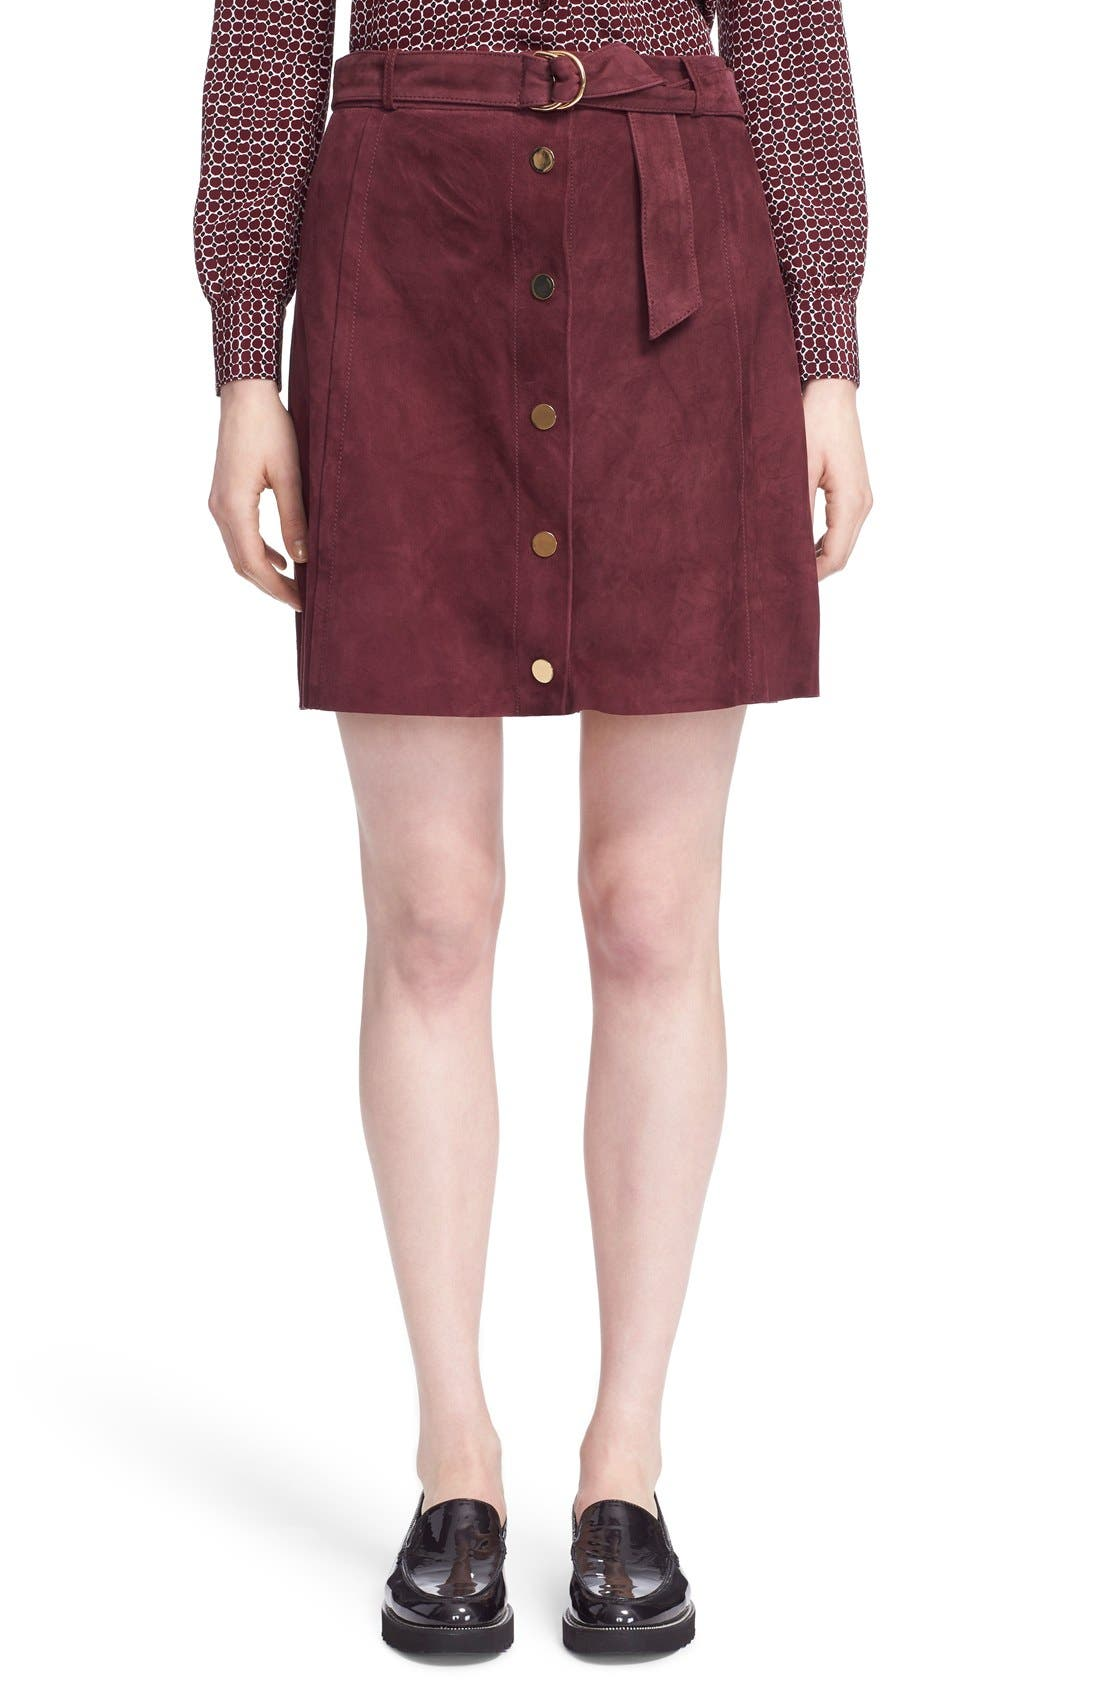 Alternate Image 1 Selected - kate spade new york belted suede a-line skirt